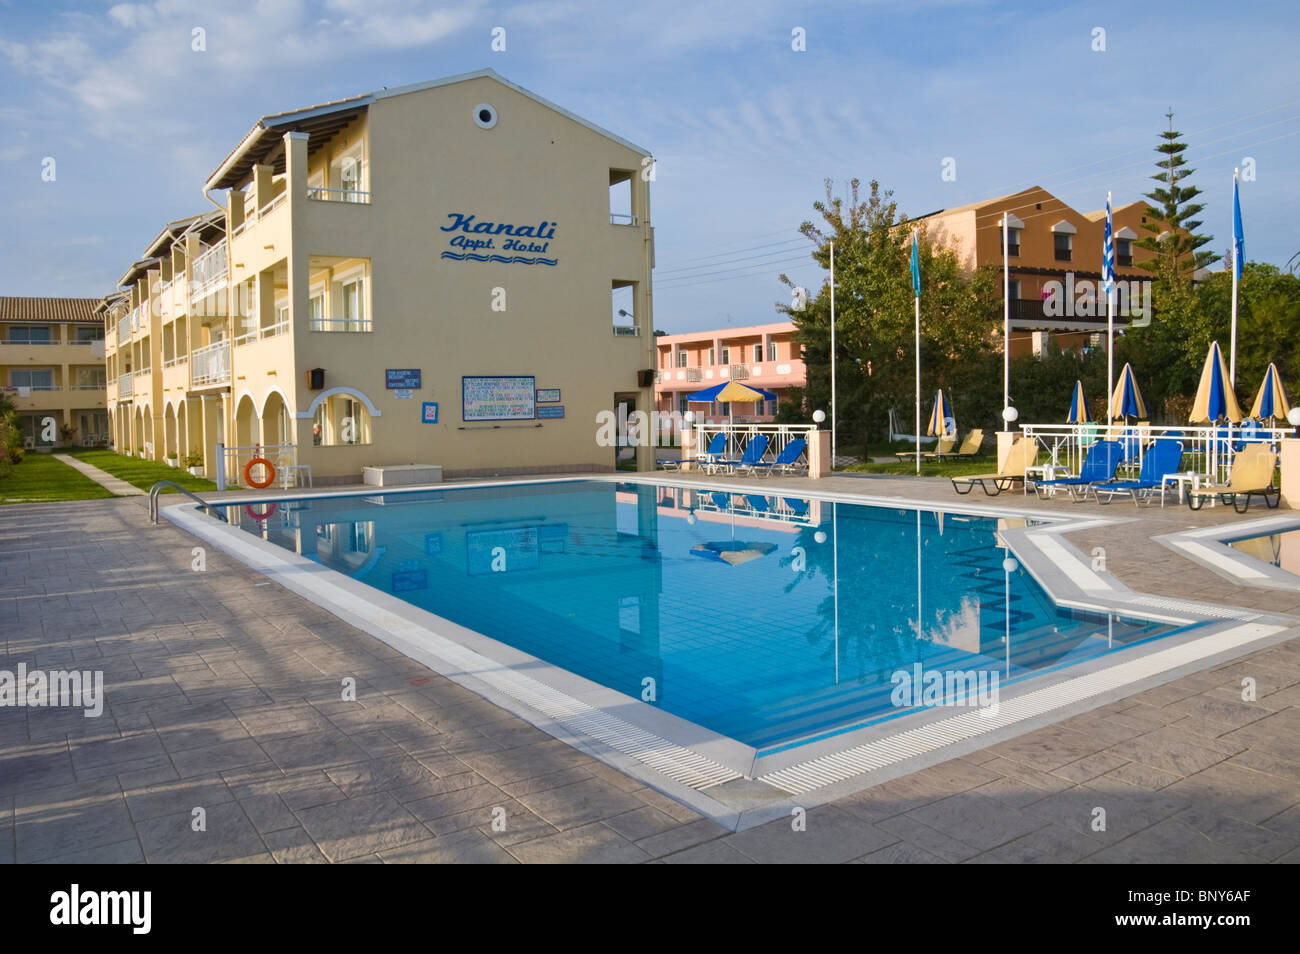 Exterior Of Kanali Apartments With Swimming Pool At Sidari